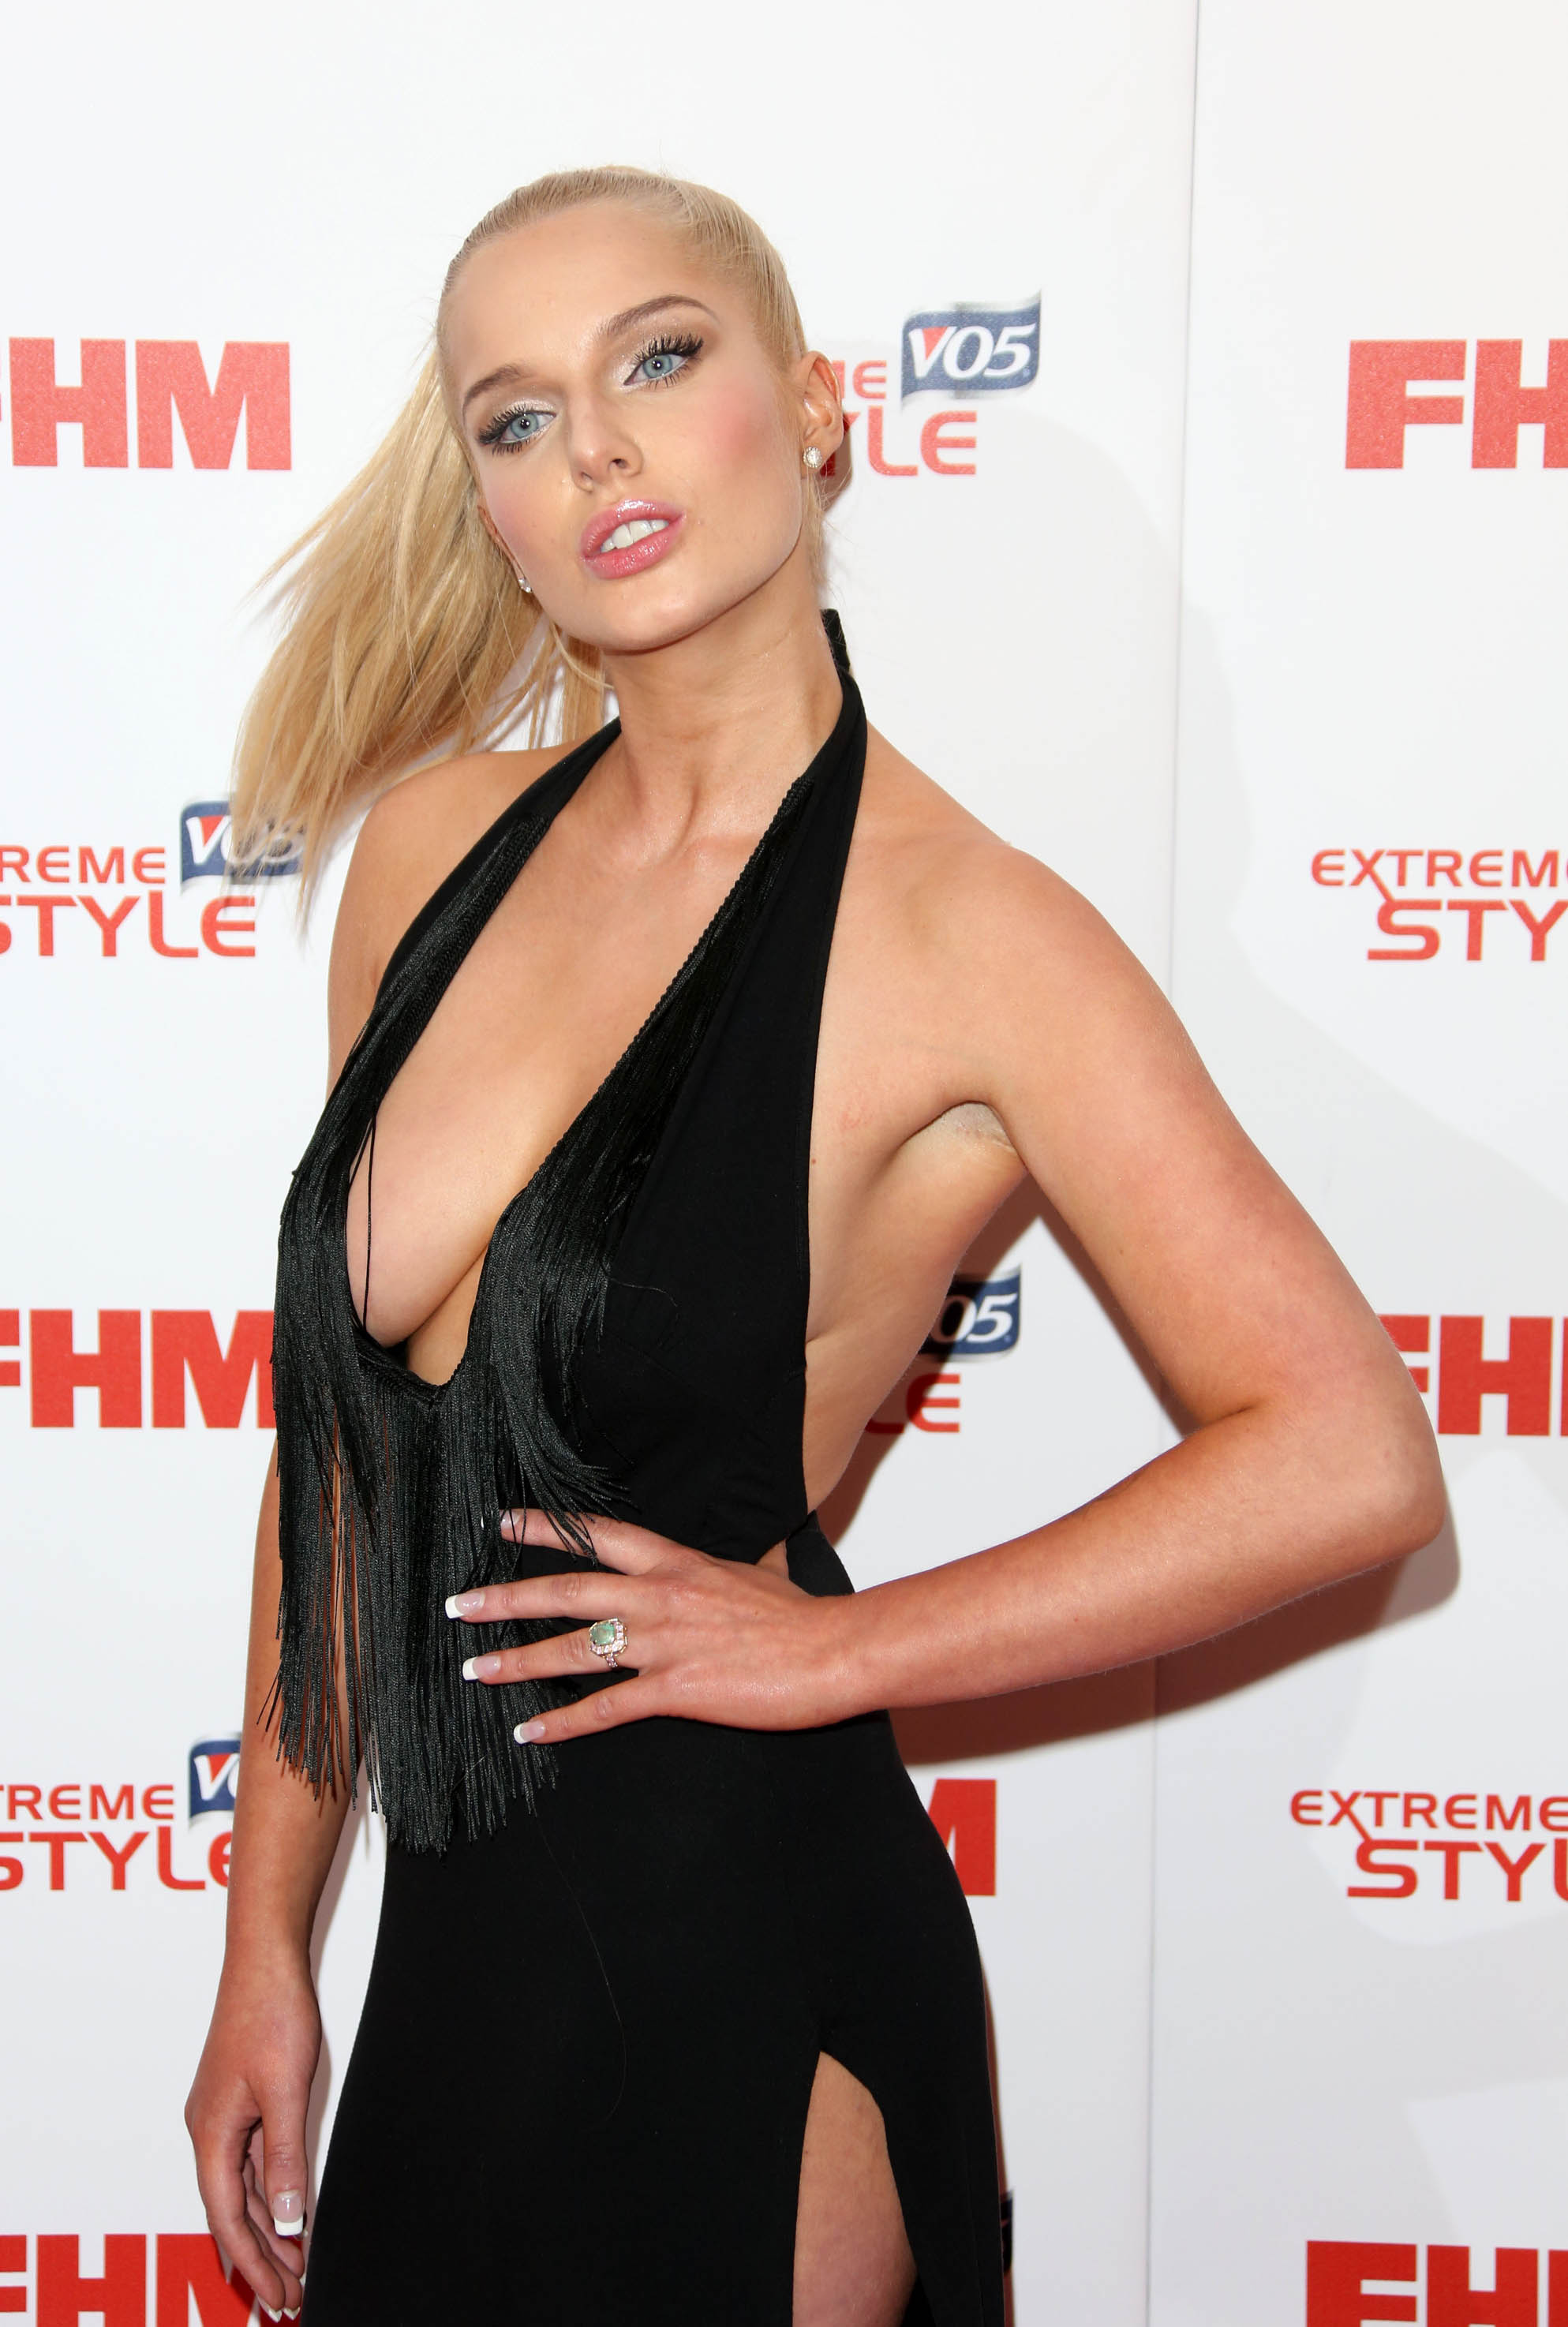 The FHM Sexiest Women Awards 2013